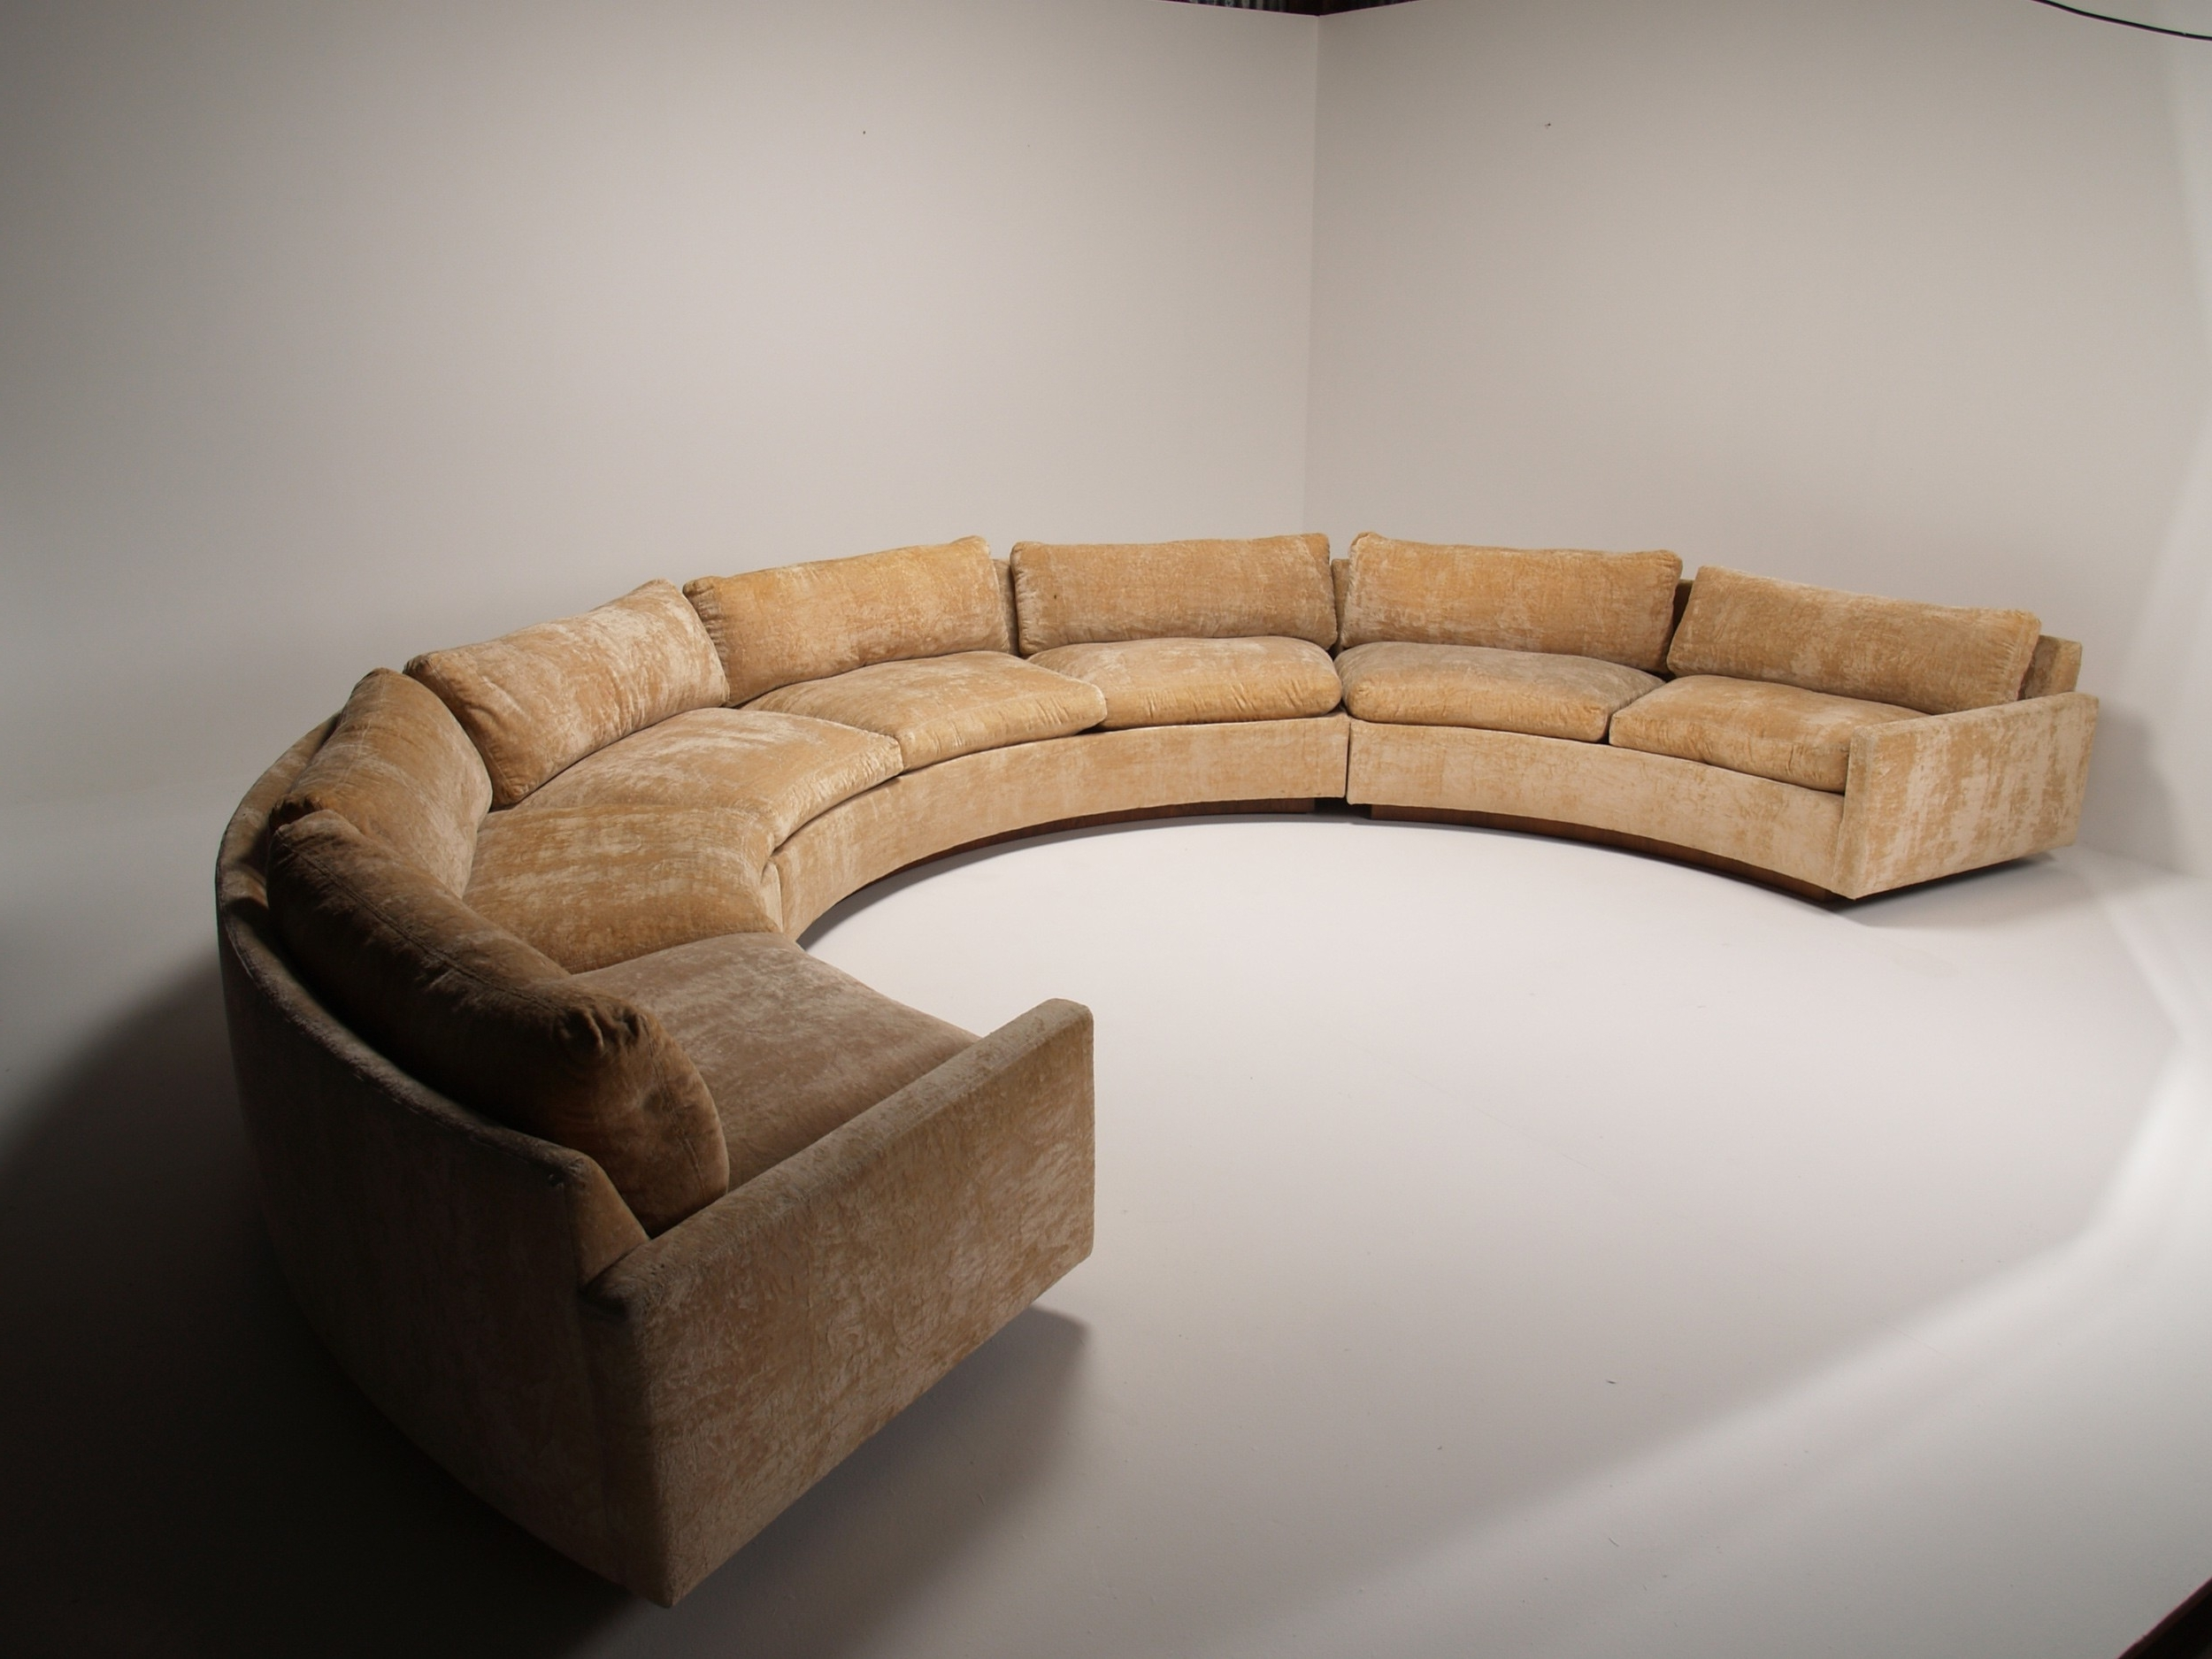 Modern Curved Sofas With Couches Rounded Sectional Leather For Within Latest Rounded Sofas (View 4 of 15)